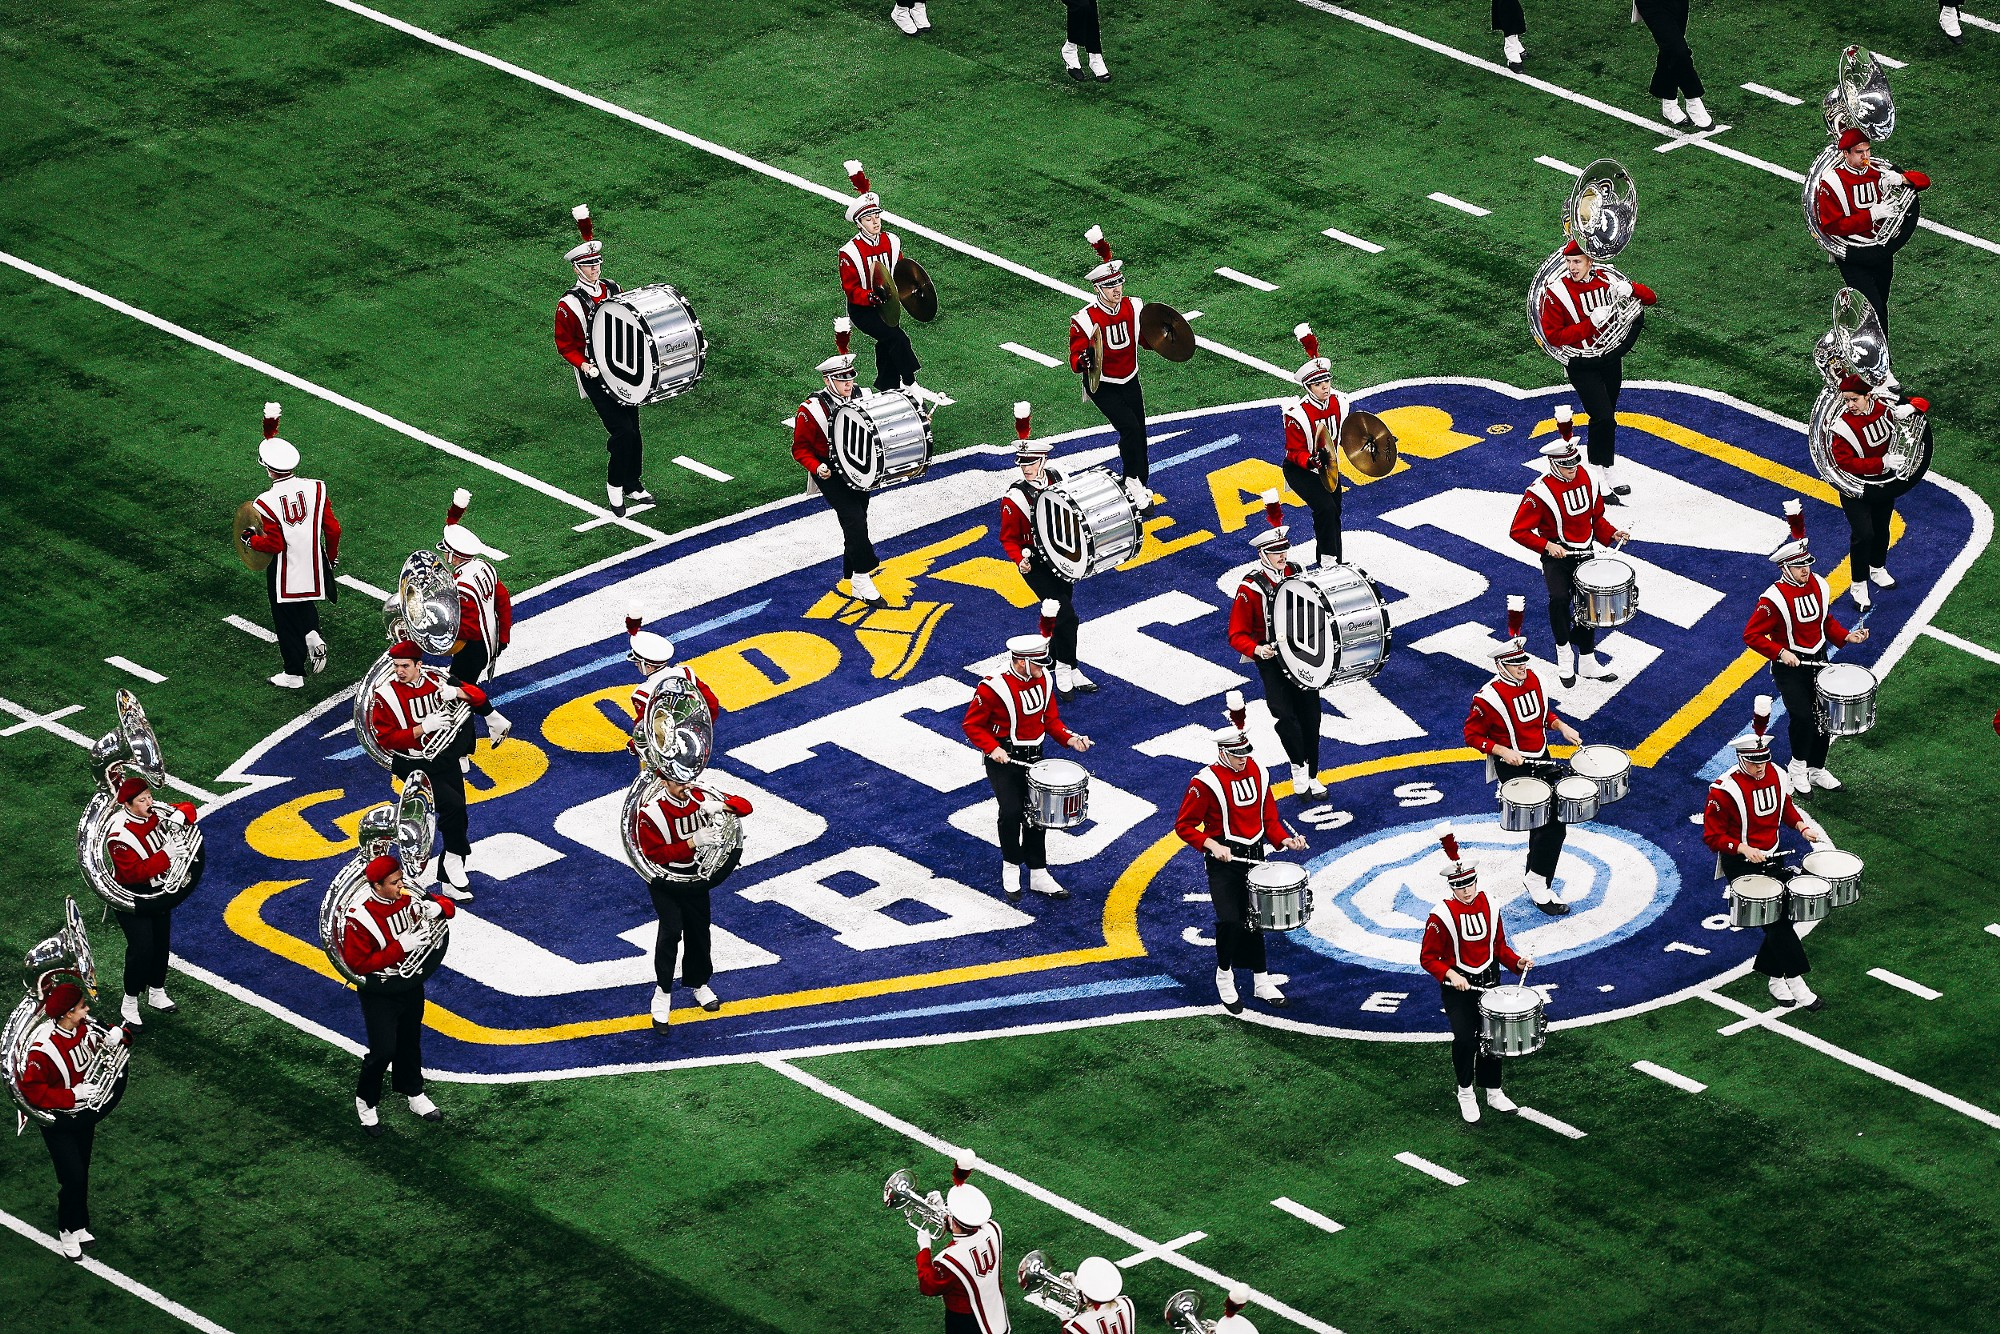 BMB_CottonBowl_08.JPG